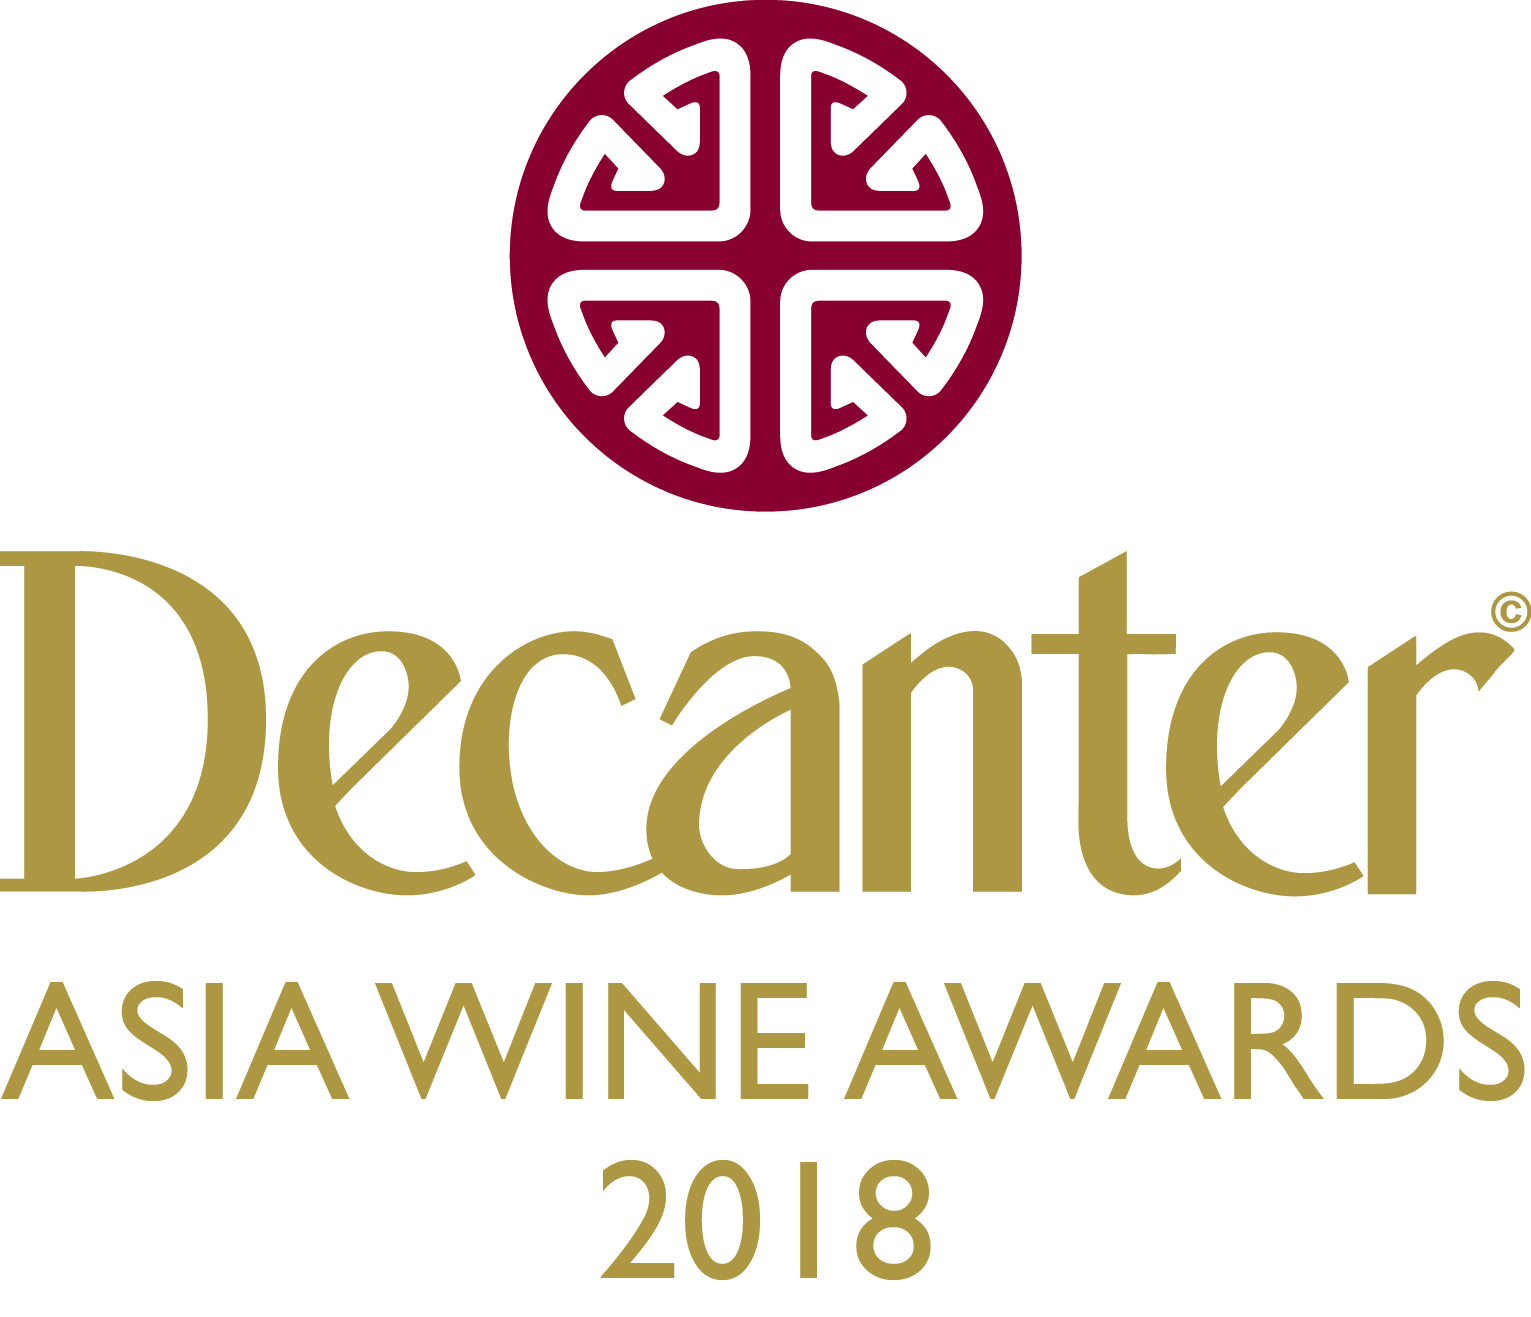 Decanter Magazine Vinvillage Morris Xchange Xclusive 125ml Silver Dawa 2018 Medal Logo Bronze Commended